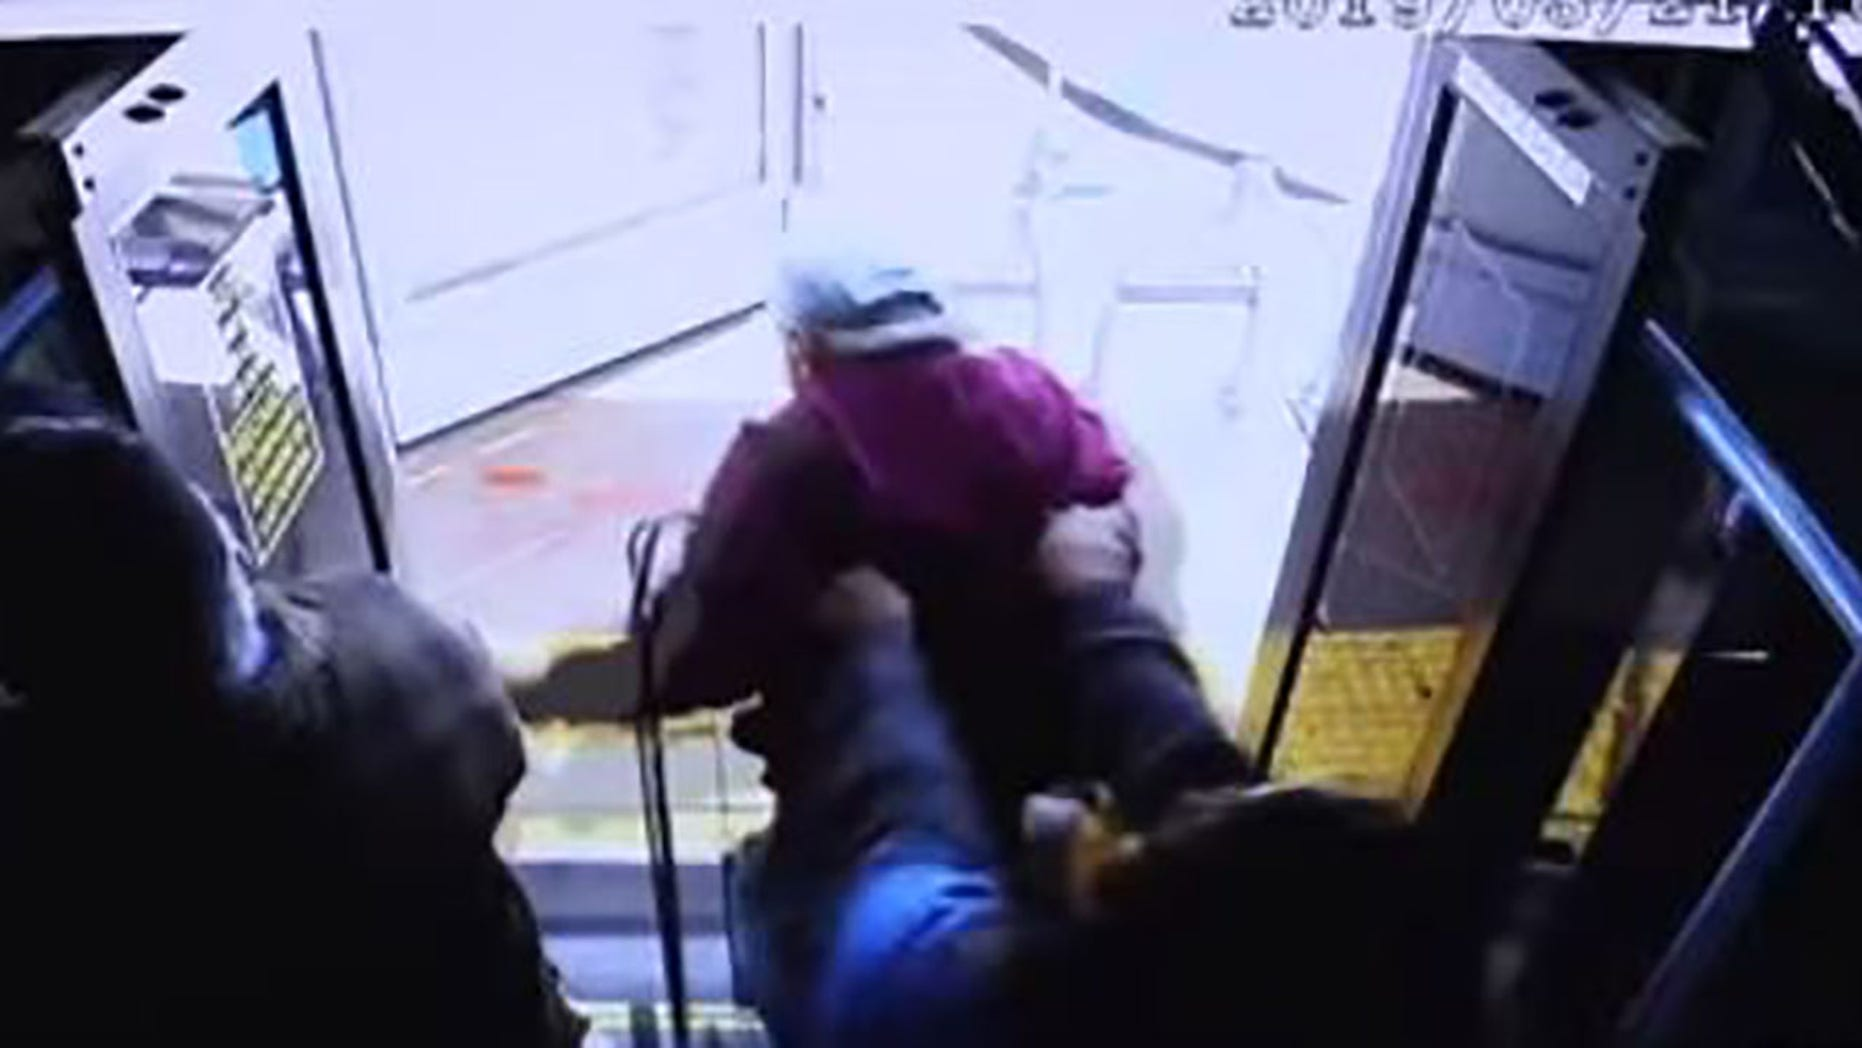 The surveillance video shows Bishop allegedly push Fournier out of the door of the stopped bus